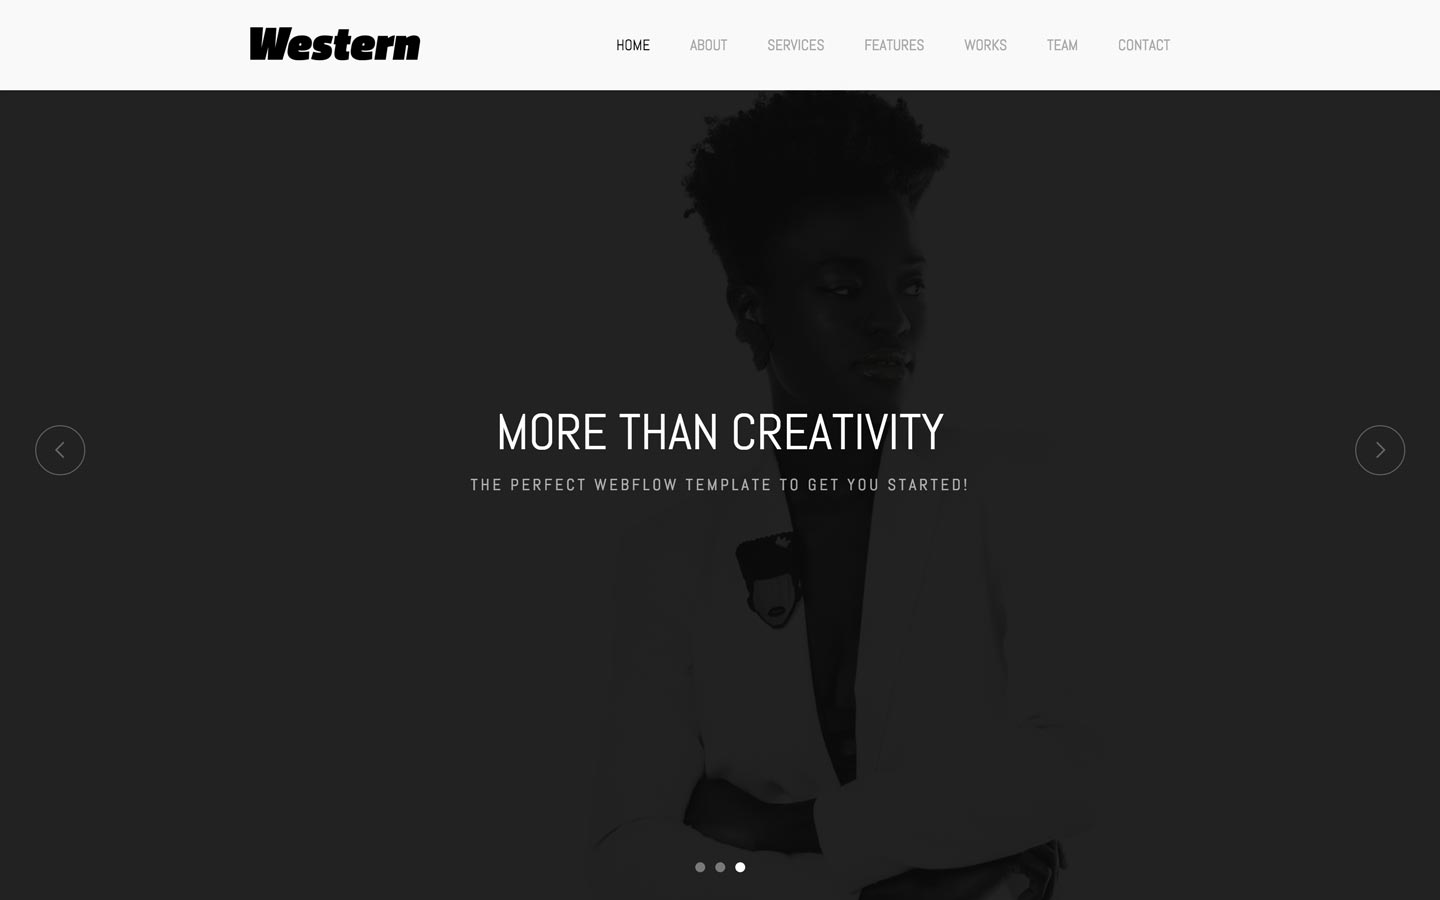 Western agency website template